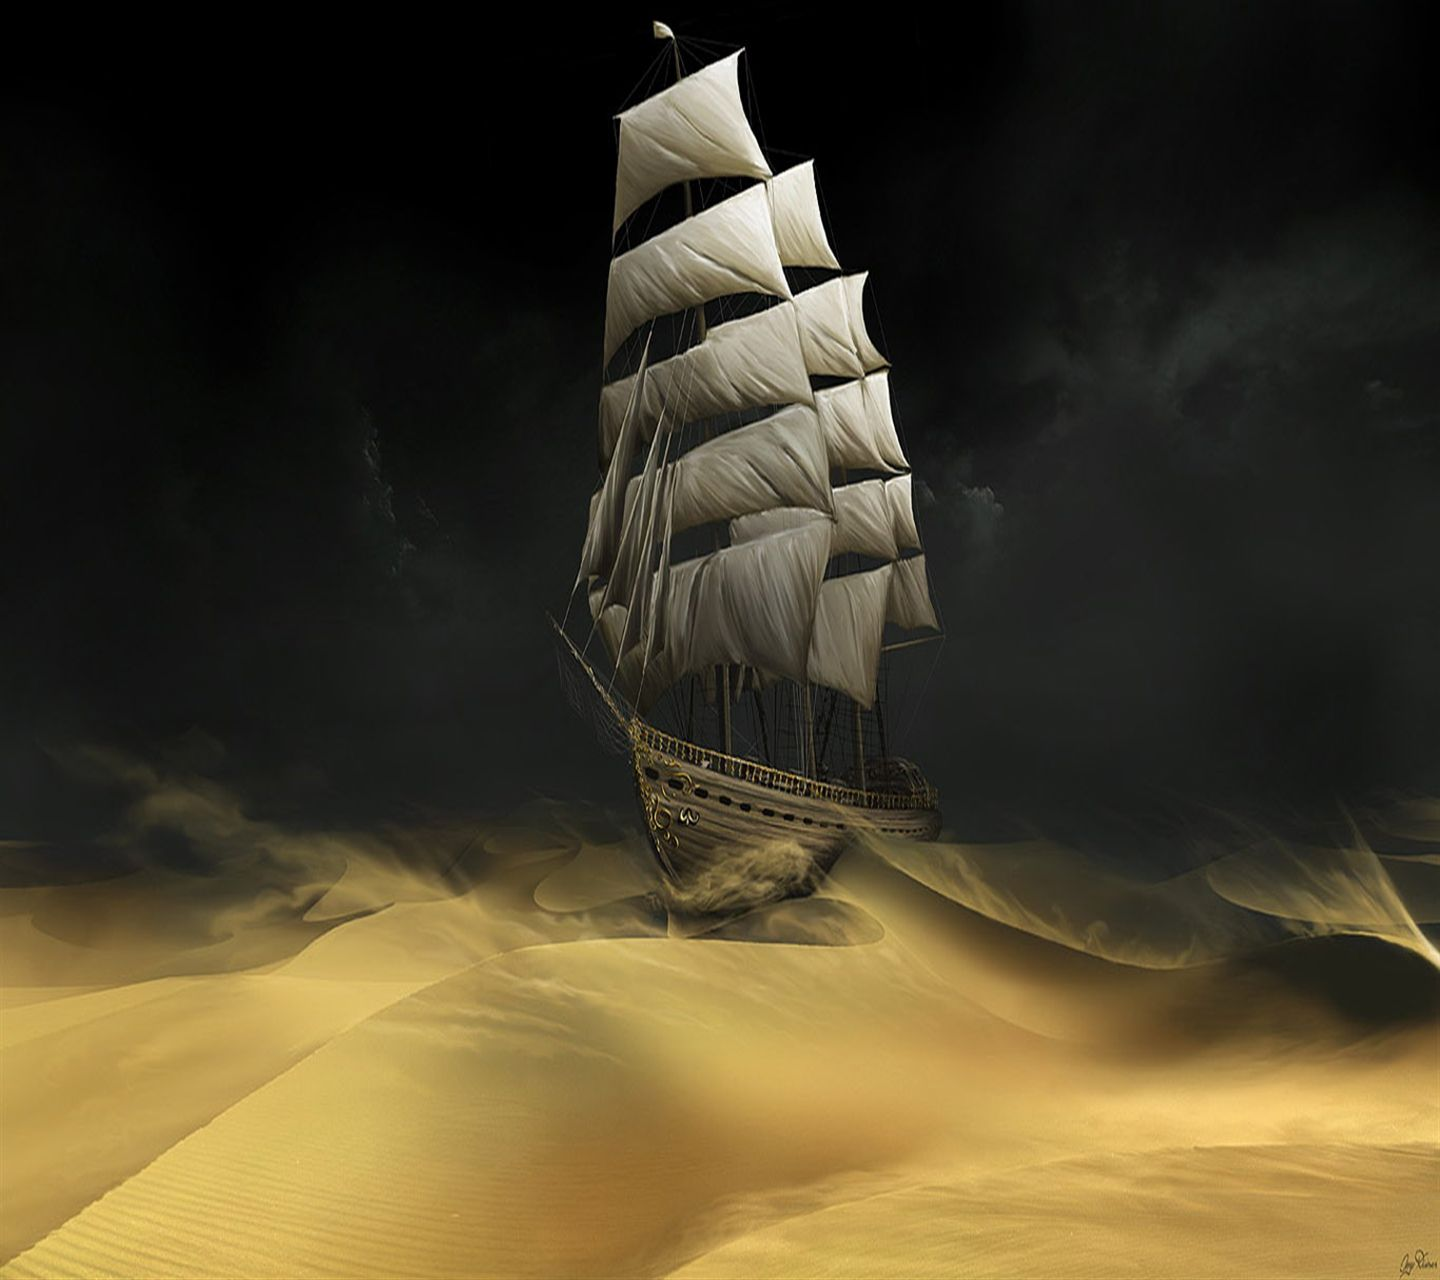 Download · Sandstorm Ship Hd,1440x1280,1280x1440,free,hot,mobile phone wallpapers,